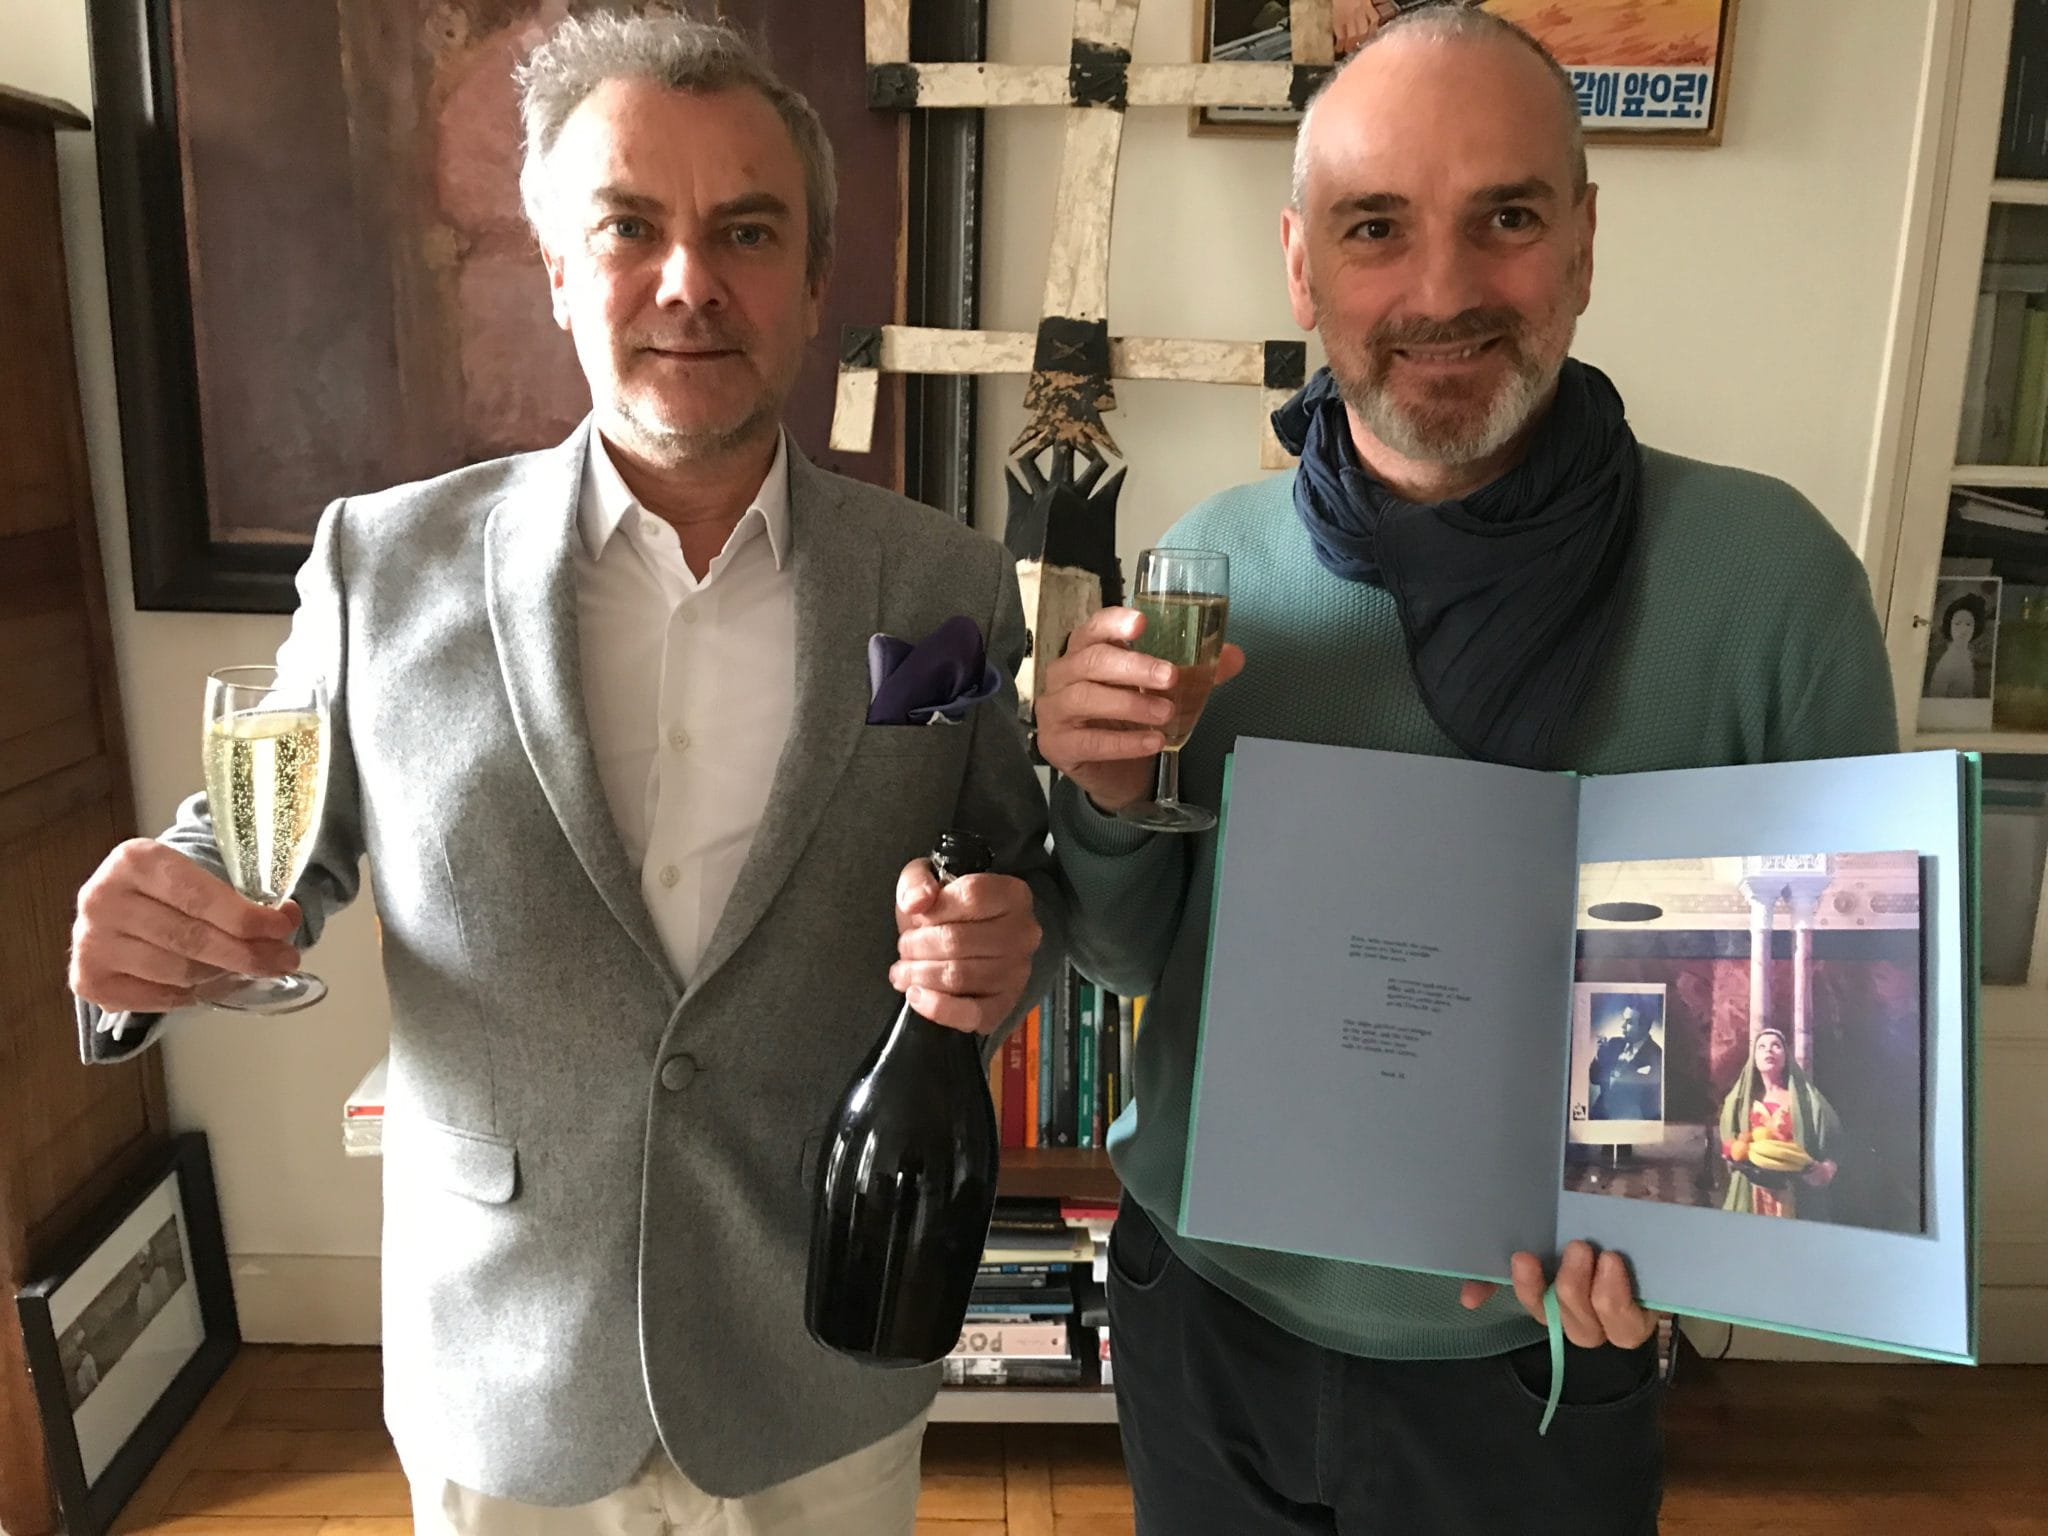 Celebrating the arrival of the new book iDyssey with the artist Stéfano De Luigi, French bubbles Happy publisher…